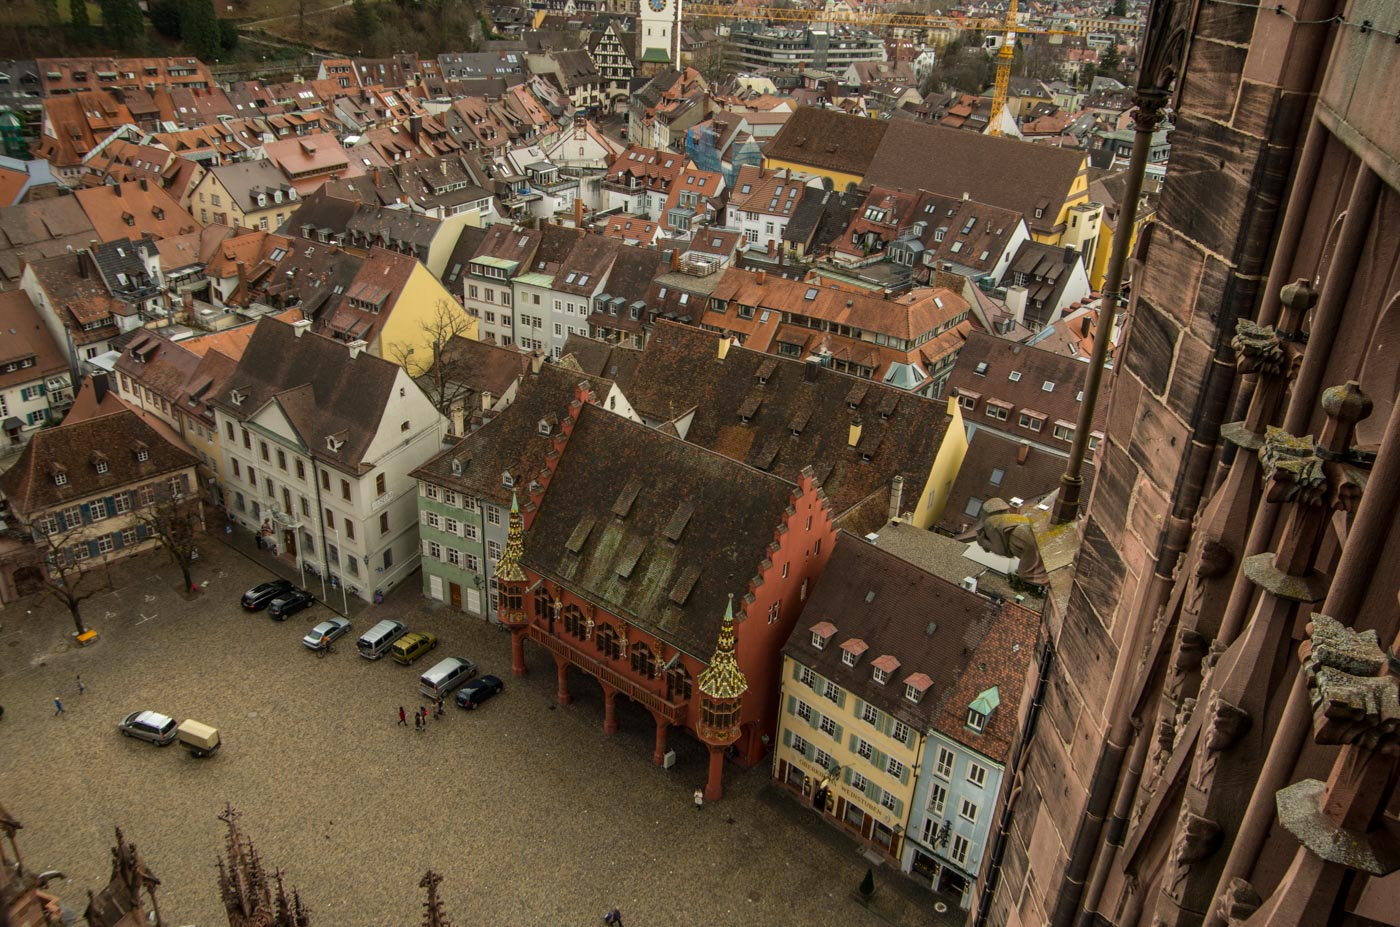 View from the top of Freiburg cathedral, the red building is an ancient department store